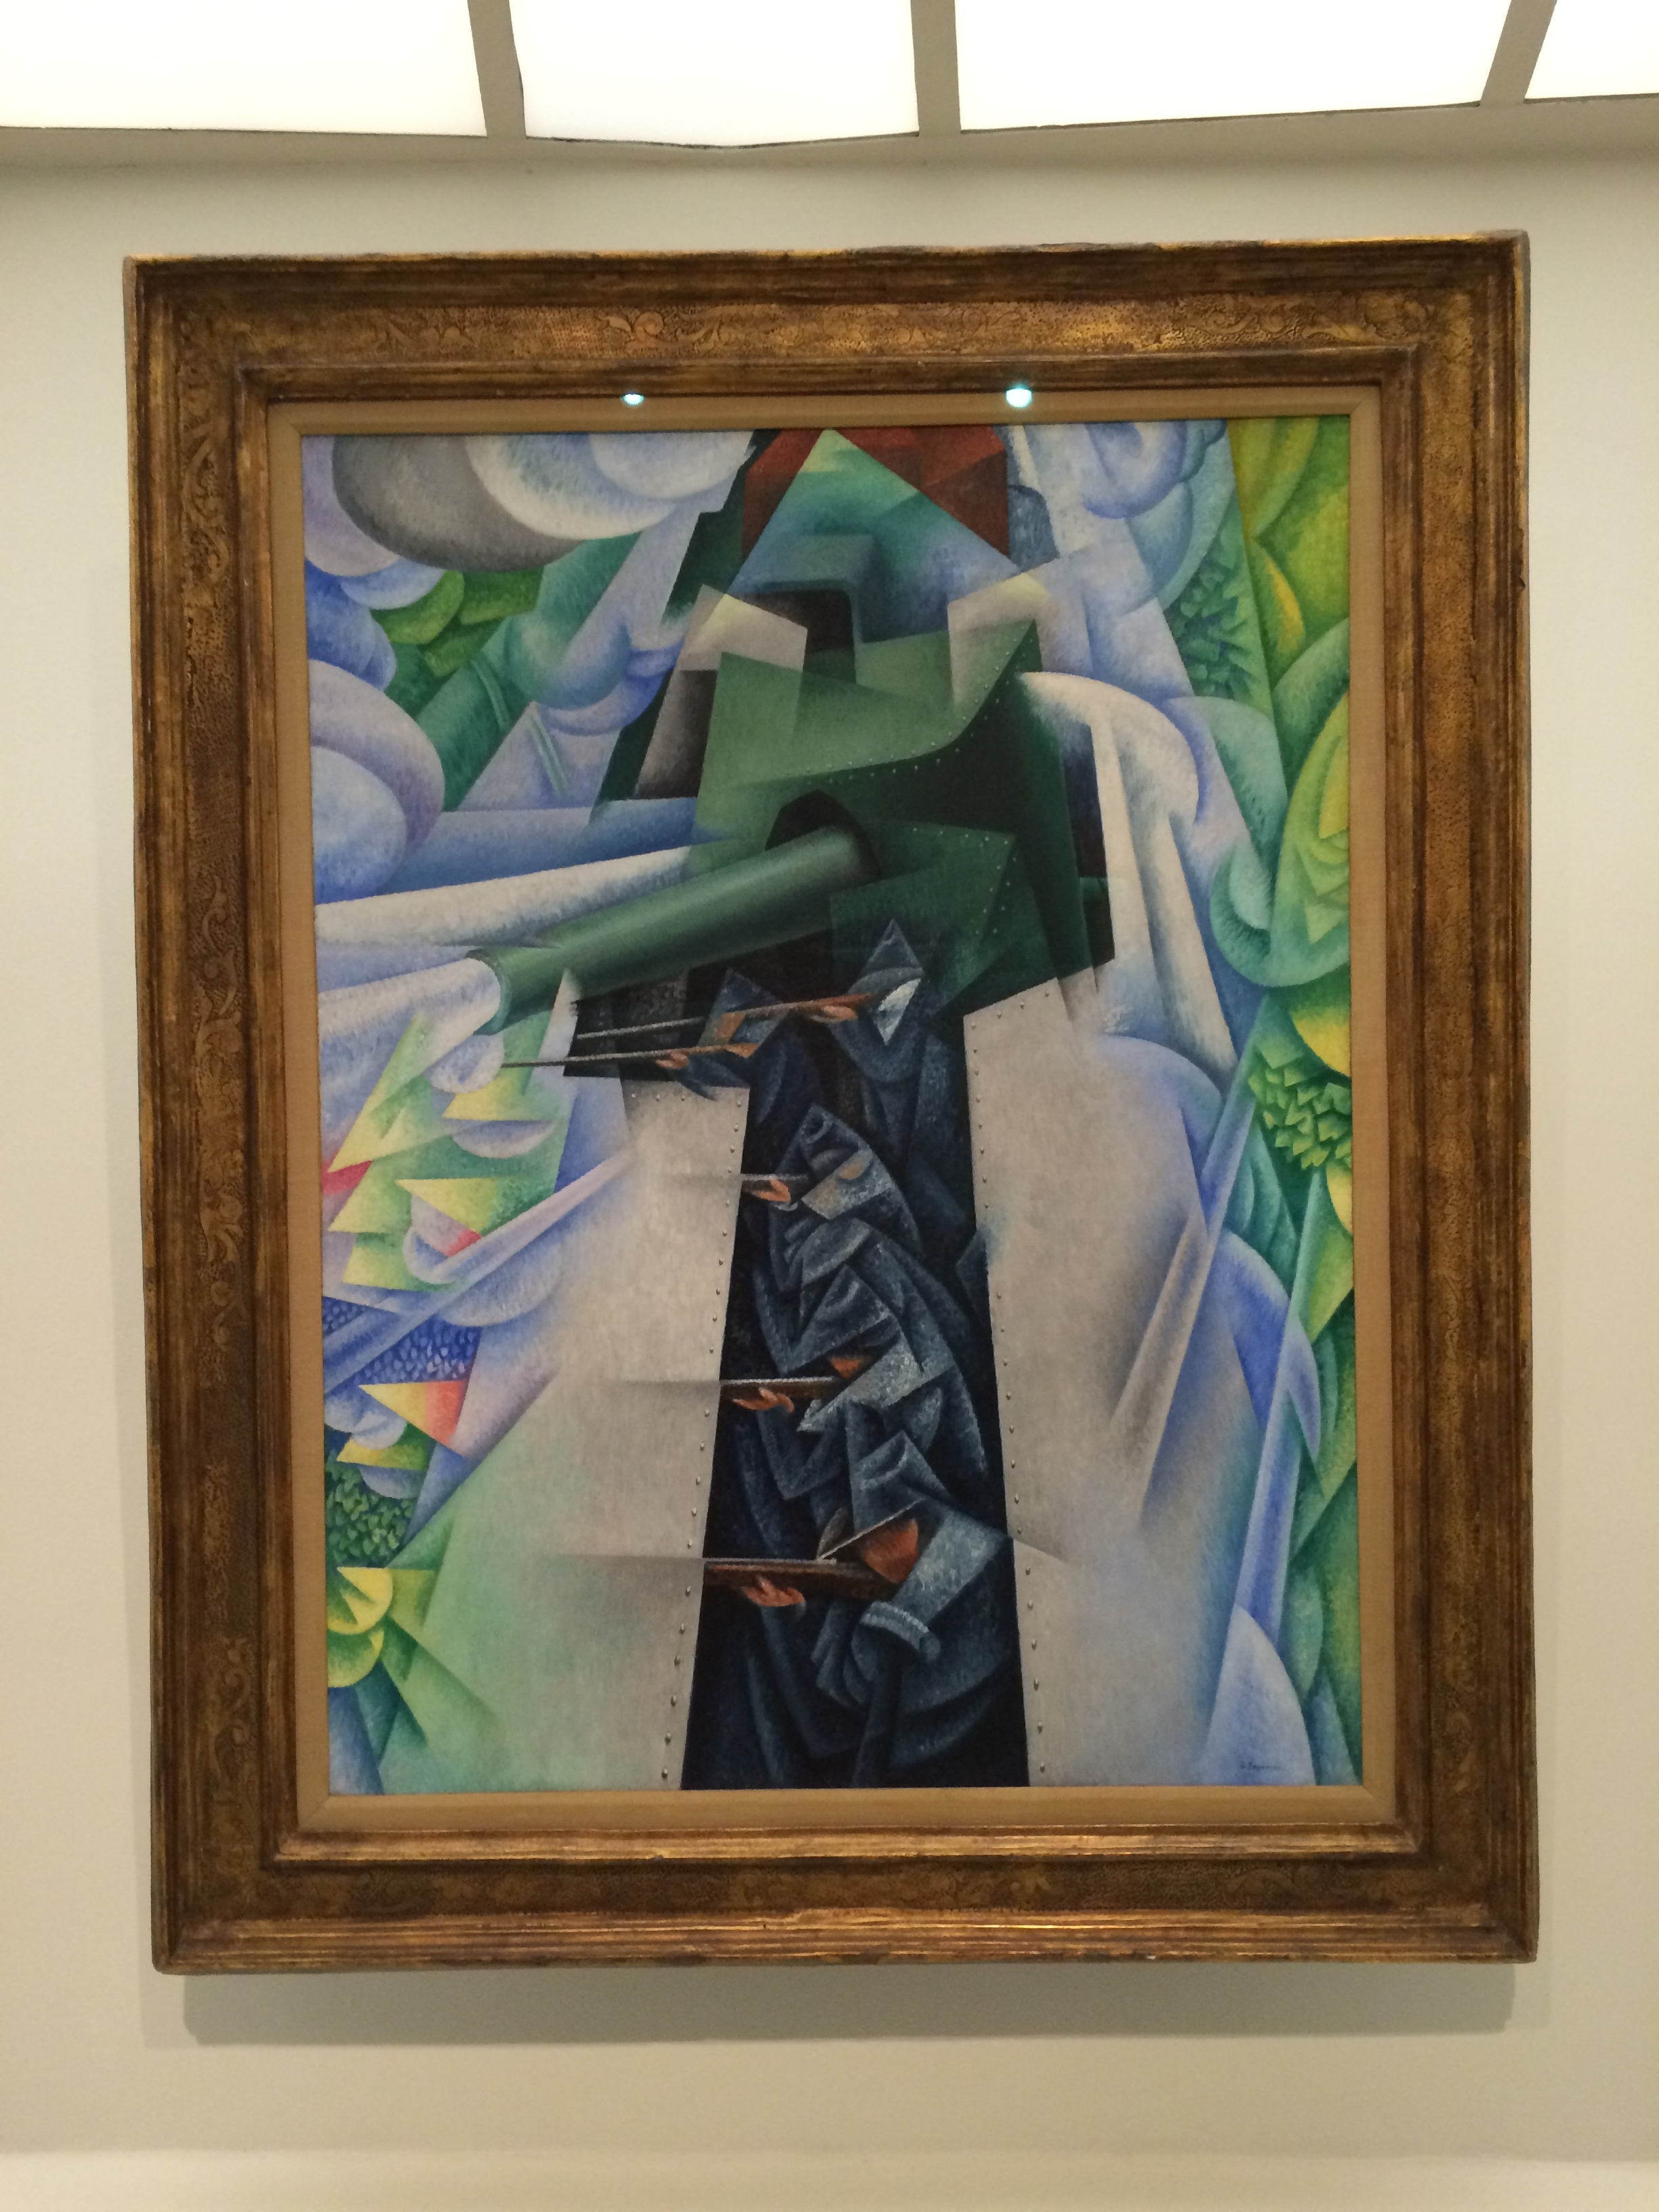 Gino Severini, Armored Train in Action, 1915, Oil on Canvas